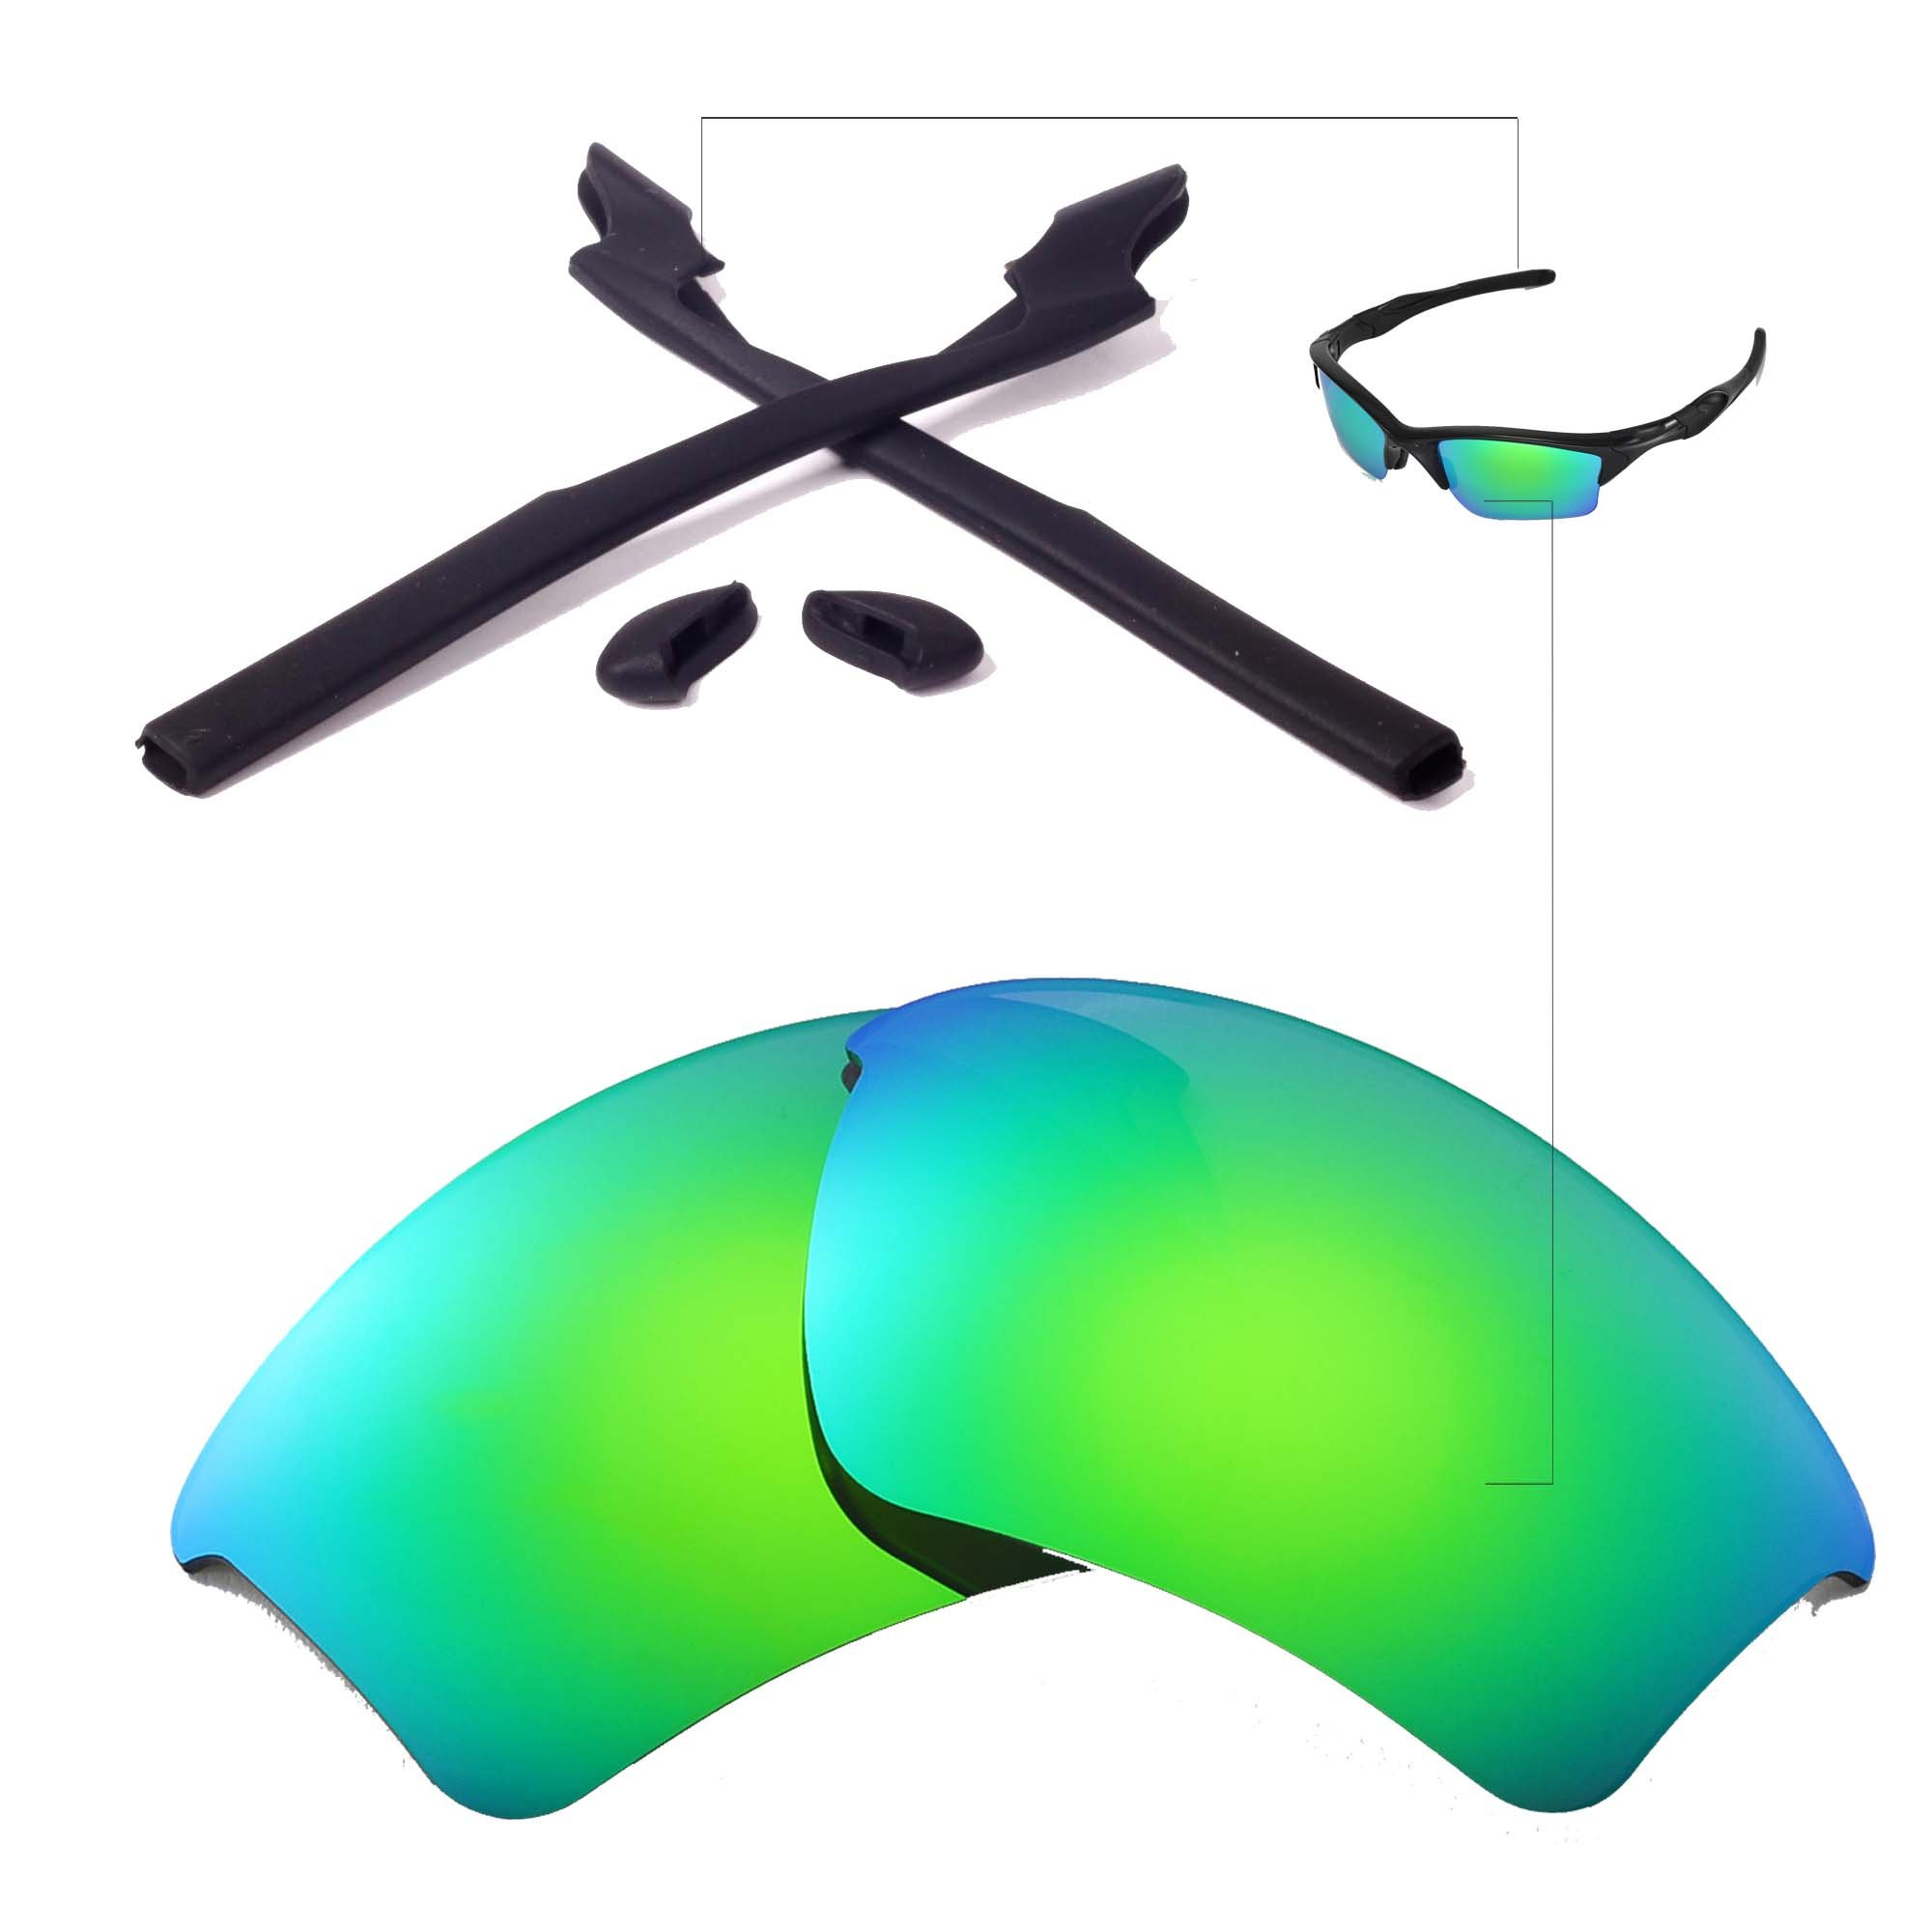 Walleva Replacement Lenses Or Lenses/Rubber for Oakley Half Jacket 2.0 XL Sunglasses - 41 Options (Emerald Polarized lenses + Black Rubber)